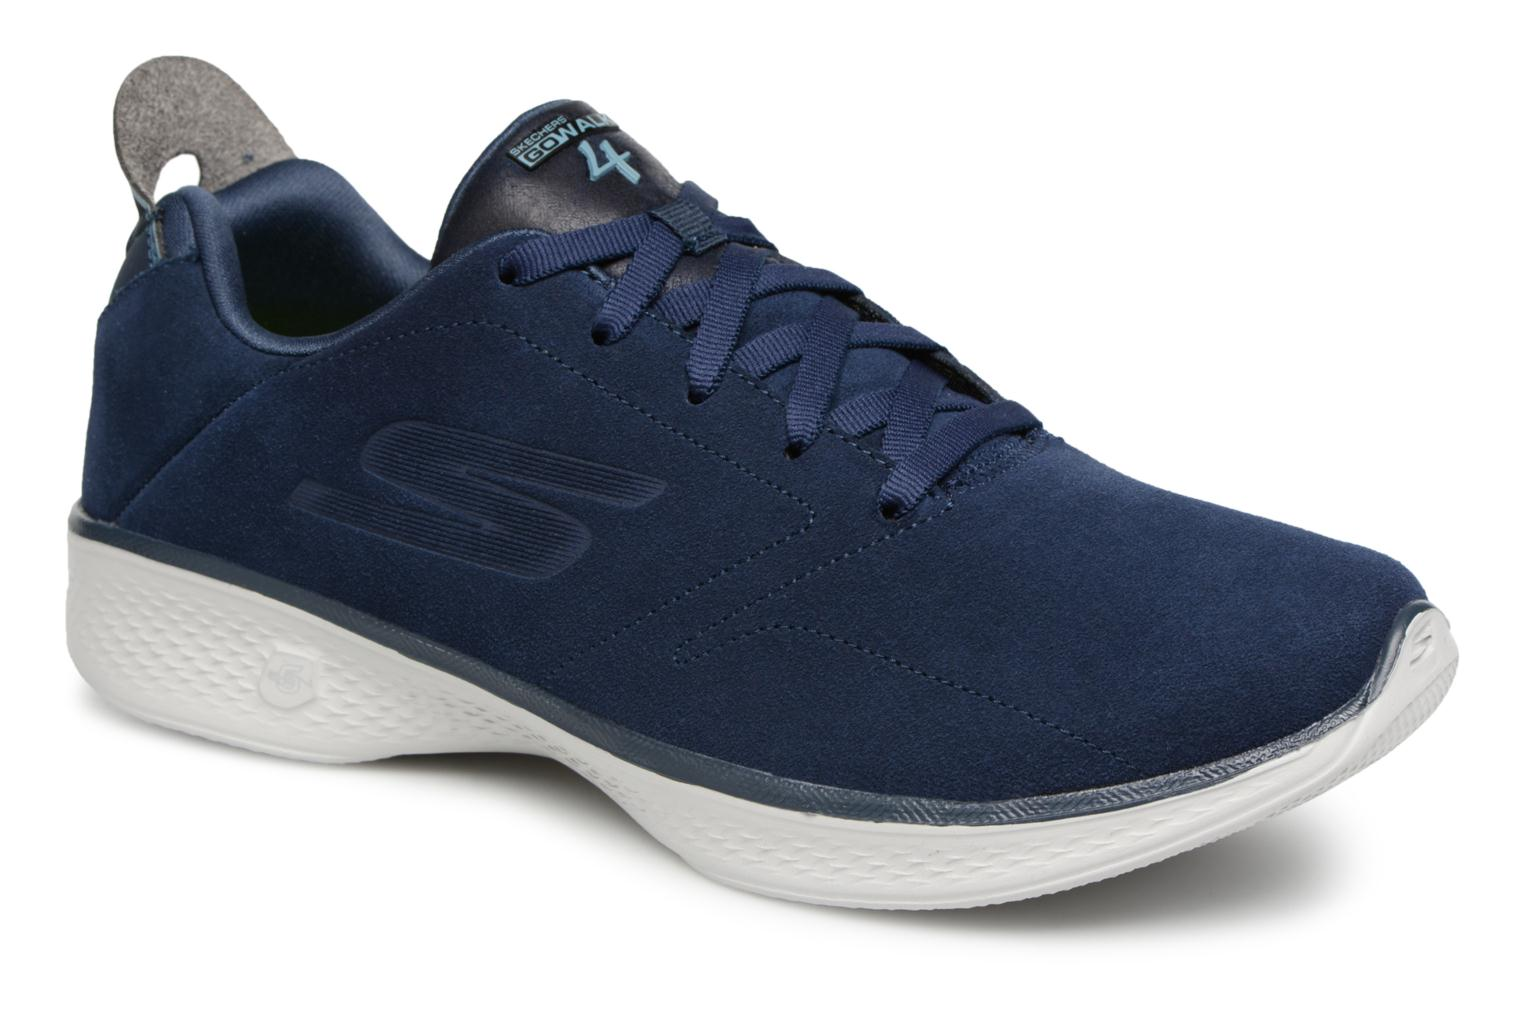 Sneakers GO WALK 4 W by Skechers